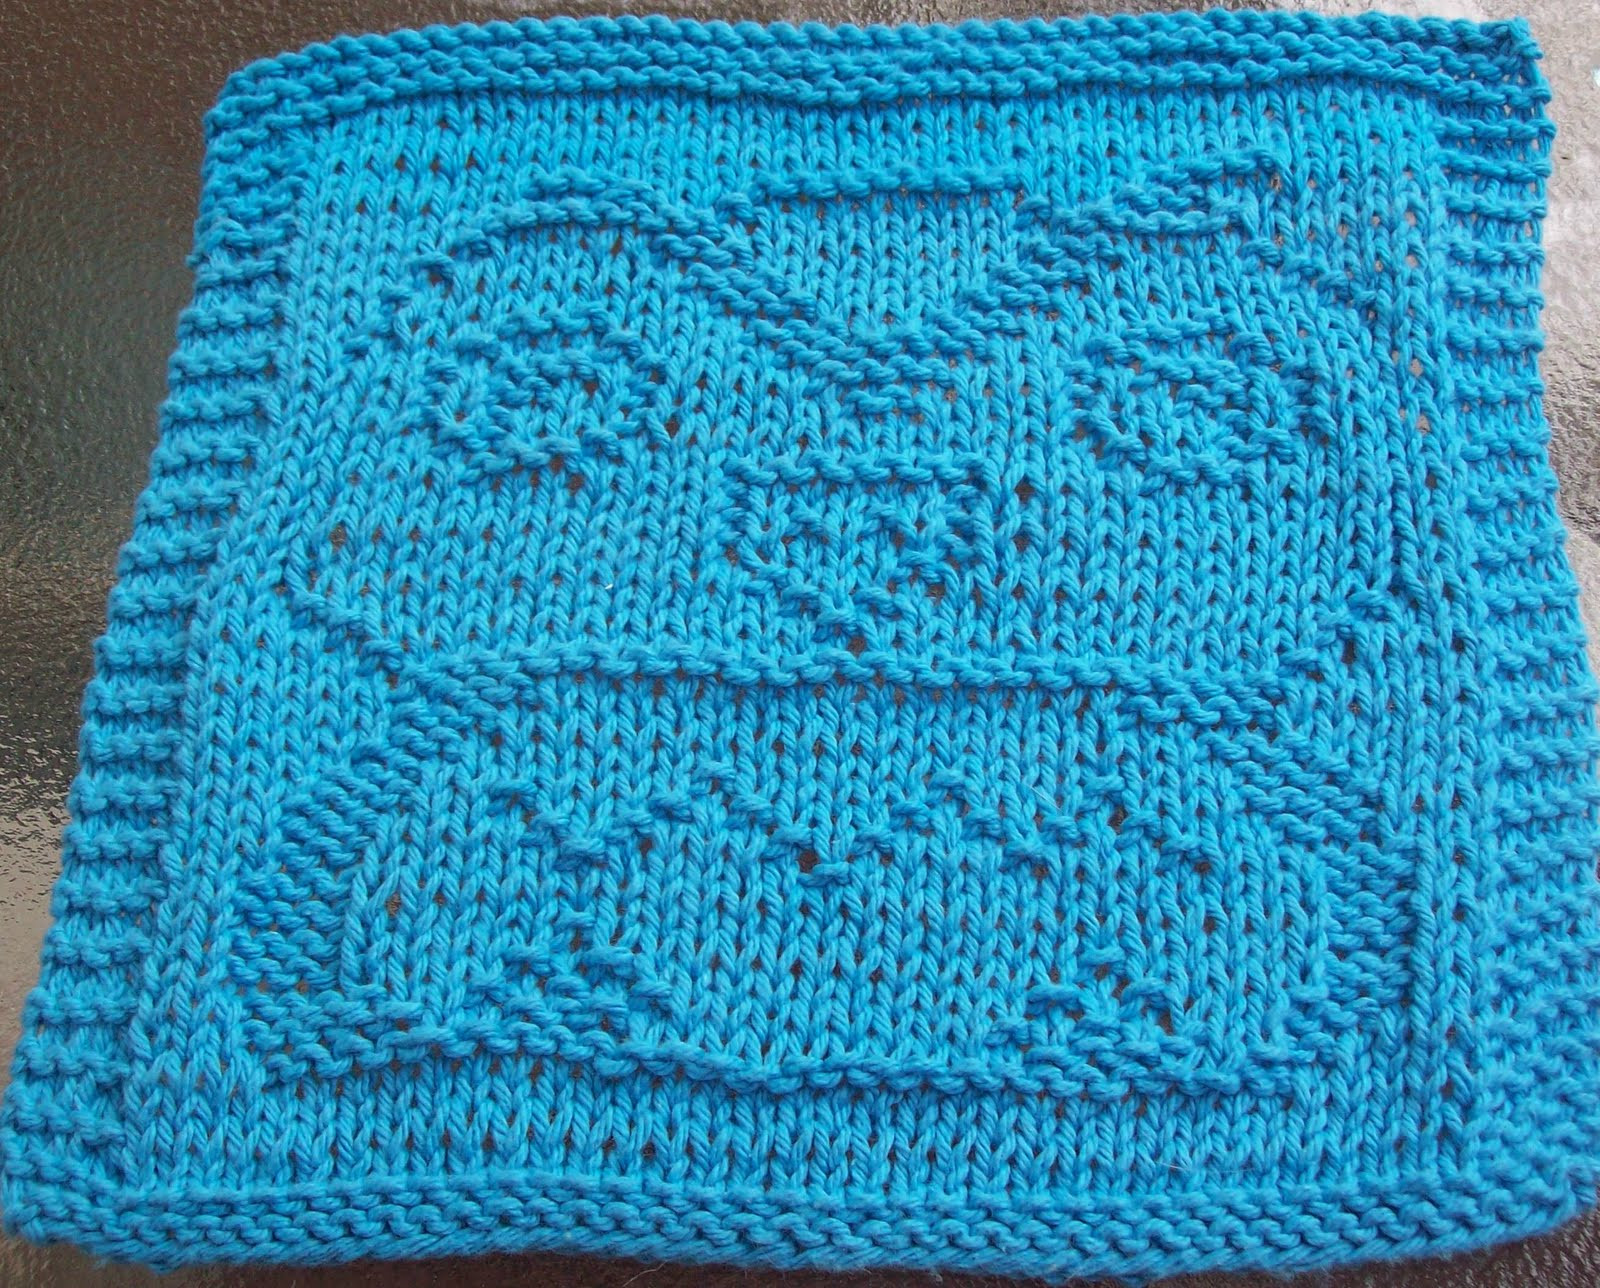 Awesome Dishcloth Patterns Knitted Free Patterns Free Dishcloth Patterns Of Attractive 40 Ideas Free Dishcloth Patterns